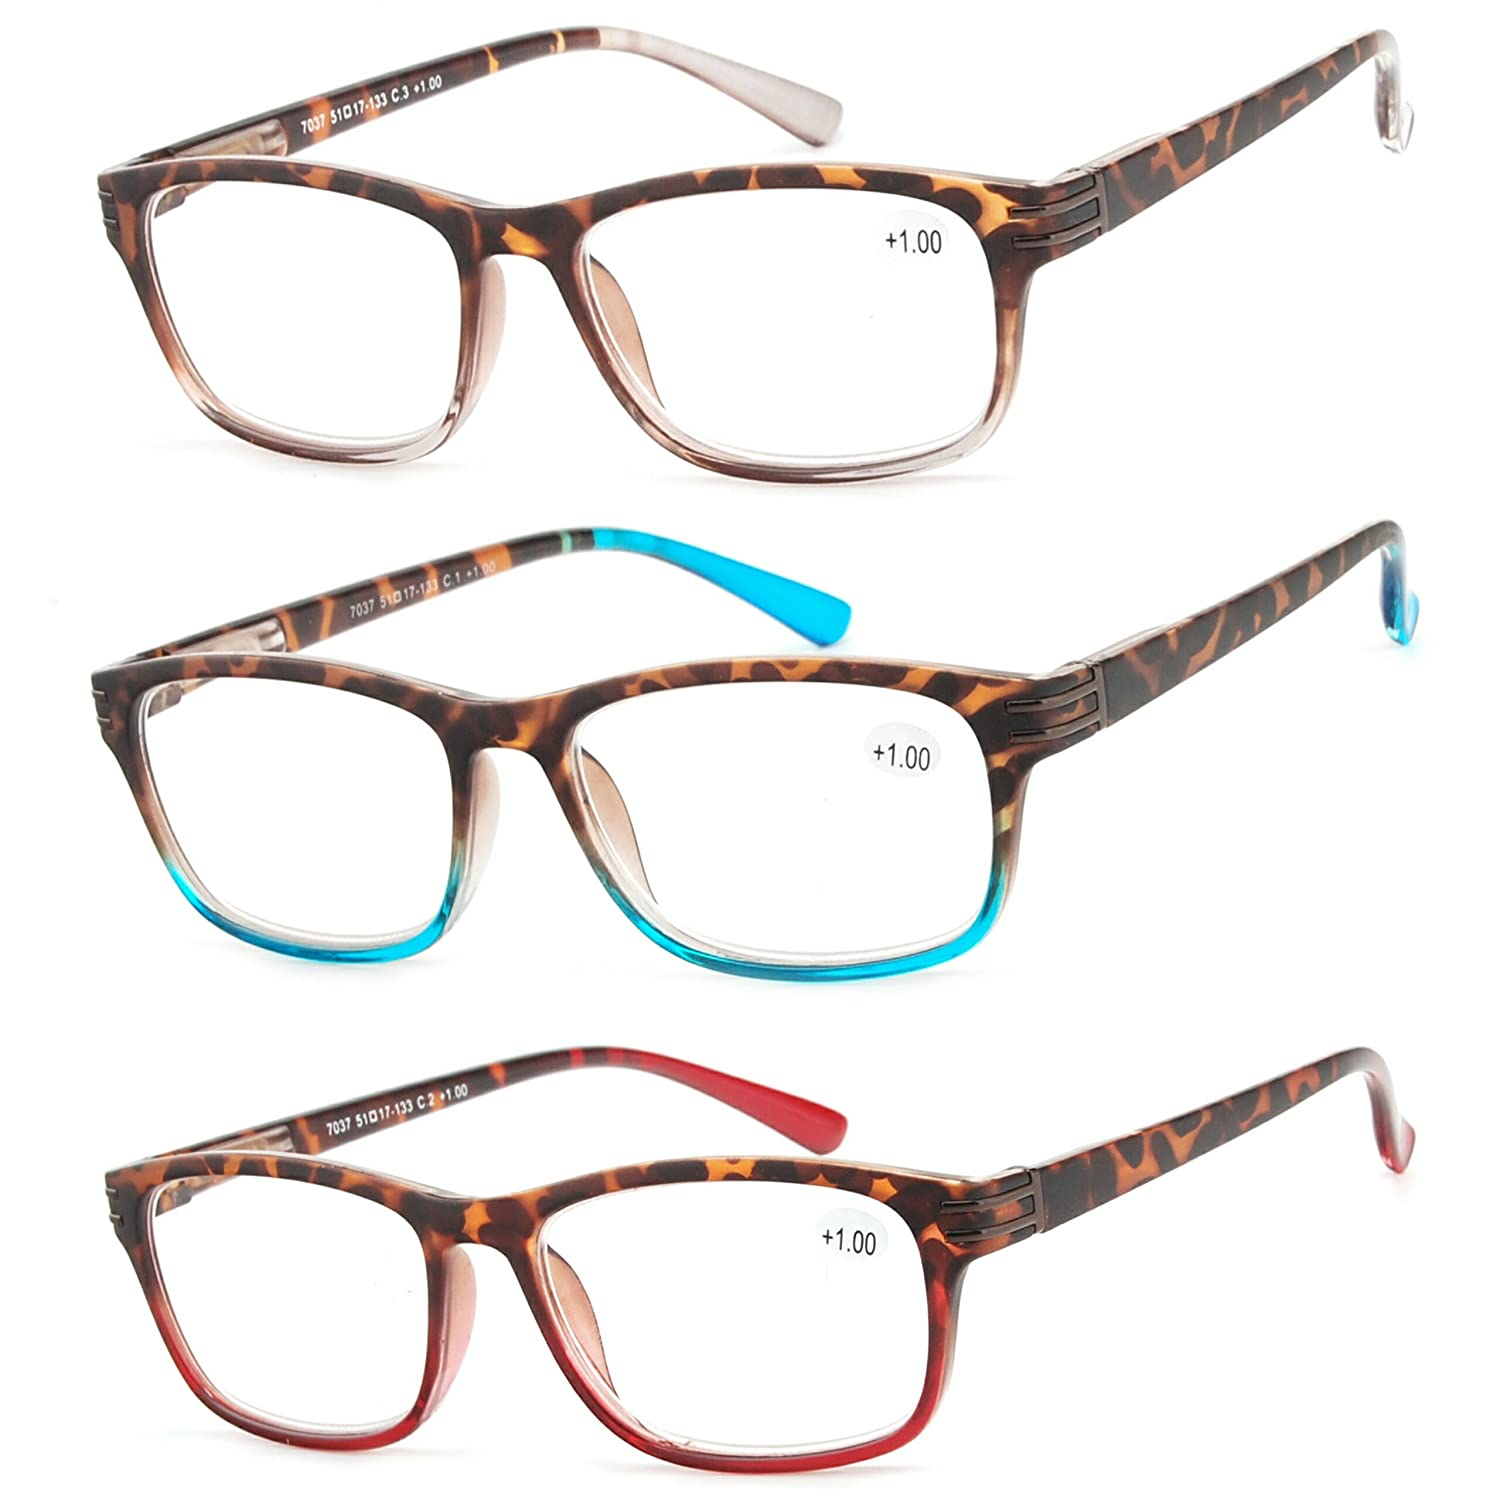 03b149bdf95 Amazon.com  Reading Glasses 3 Pair Great Value Stylish Readers Fashion Men  and Women Glasses for Reading +1  Clothing